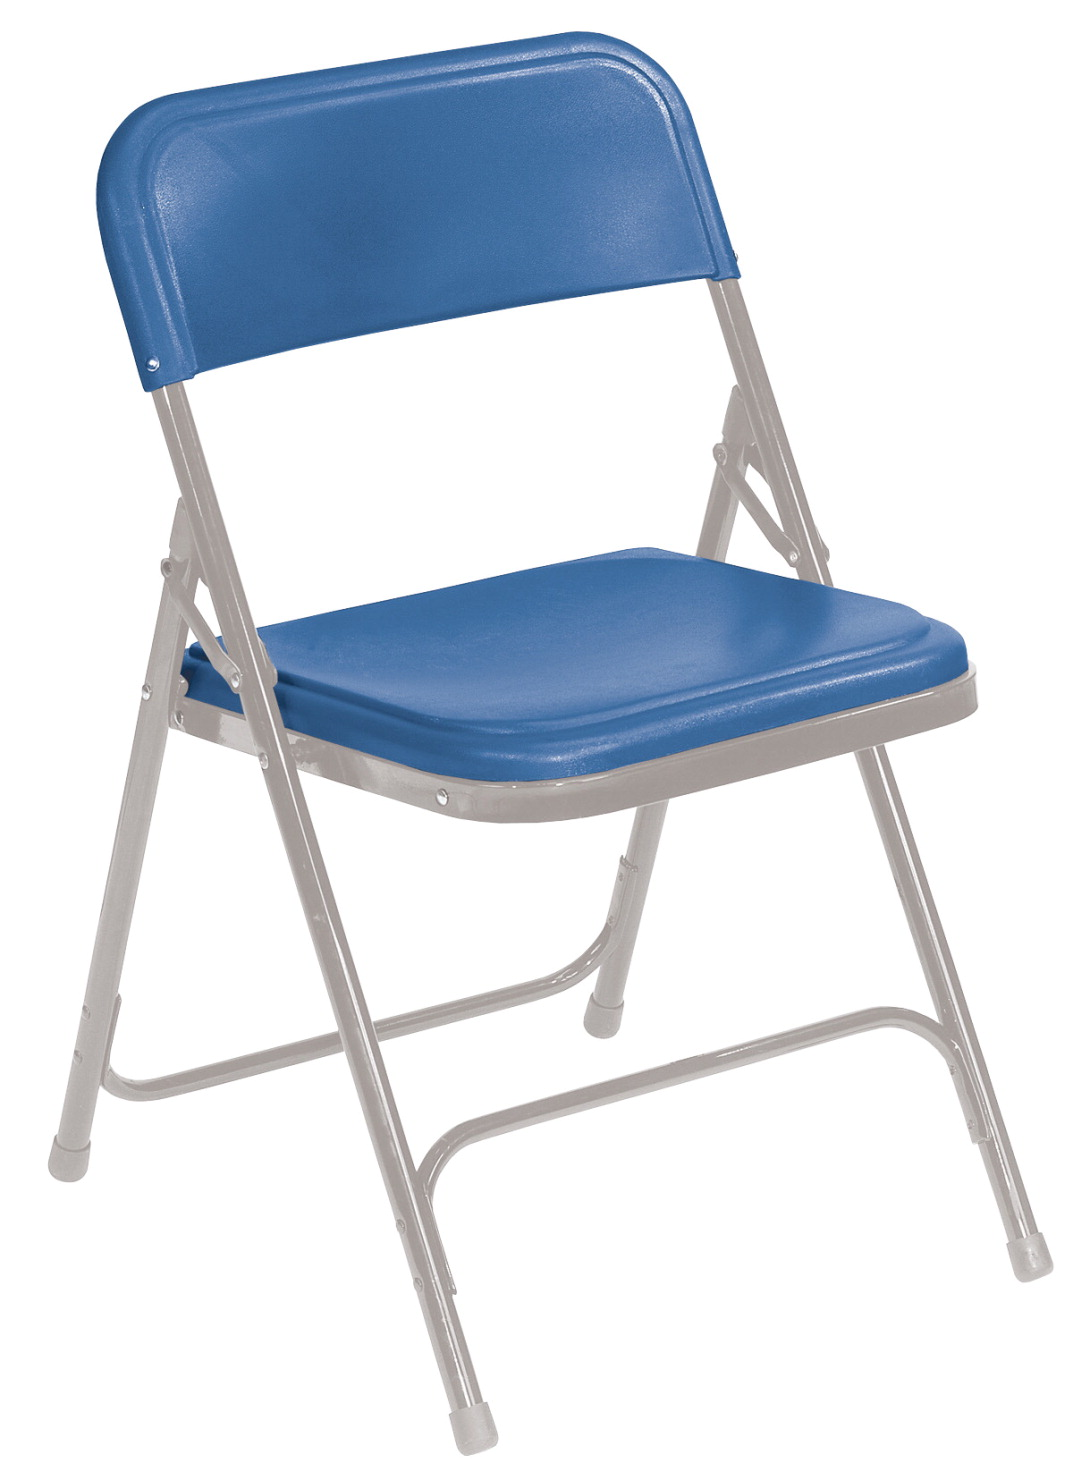 National Public Seating 800 Series Premium Lightweight Folding Chair, 18-3/4 x 20-3/4 x 29-3/4 Inches, Various Options